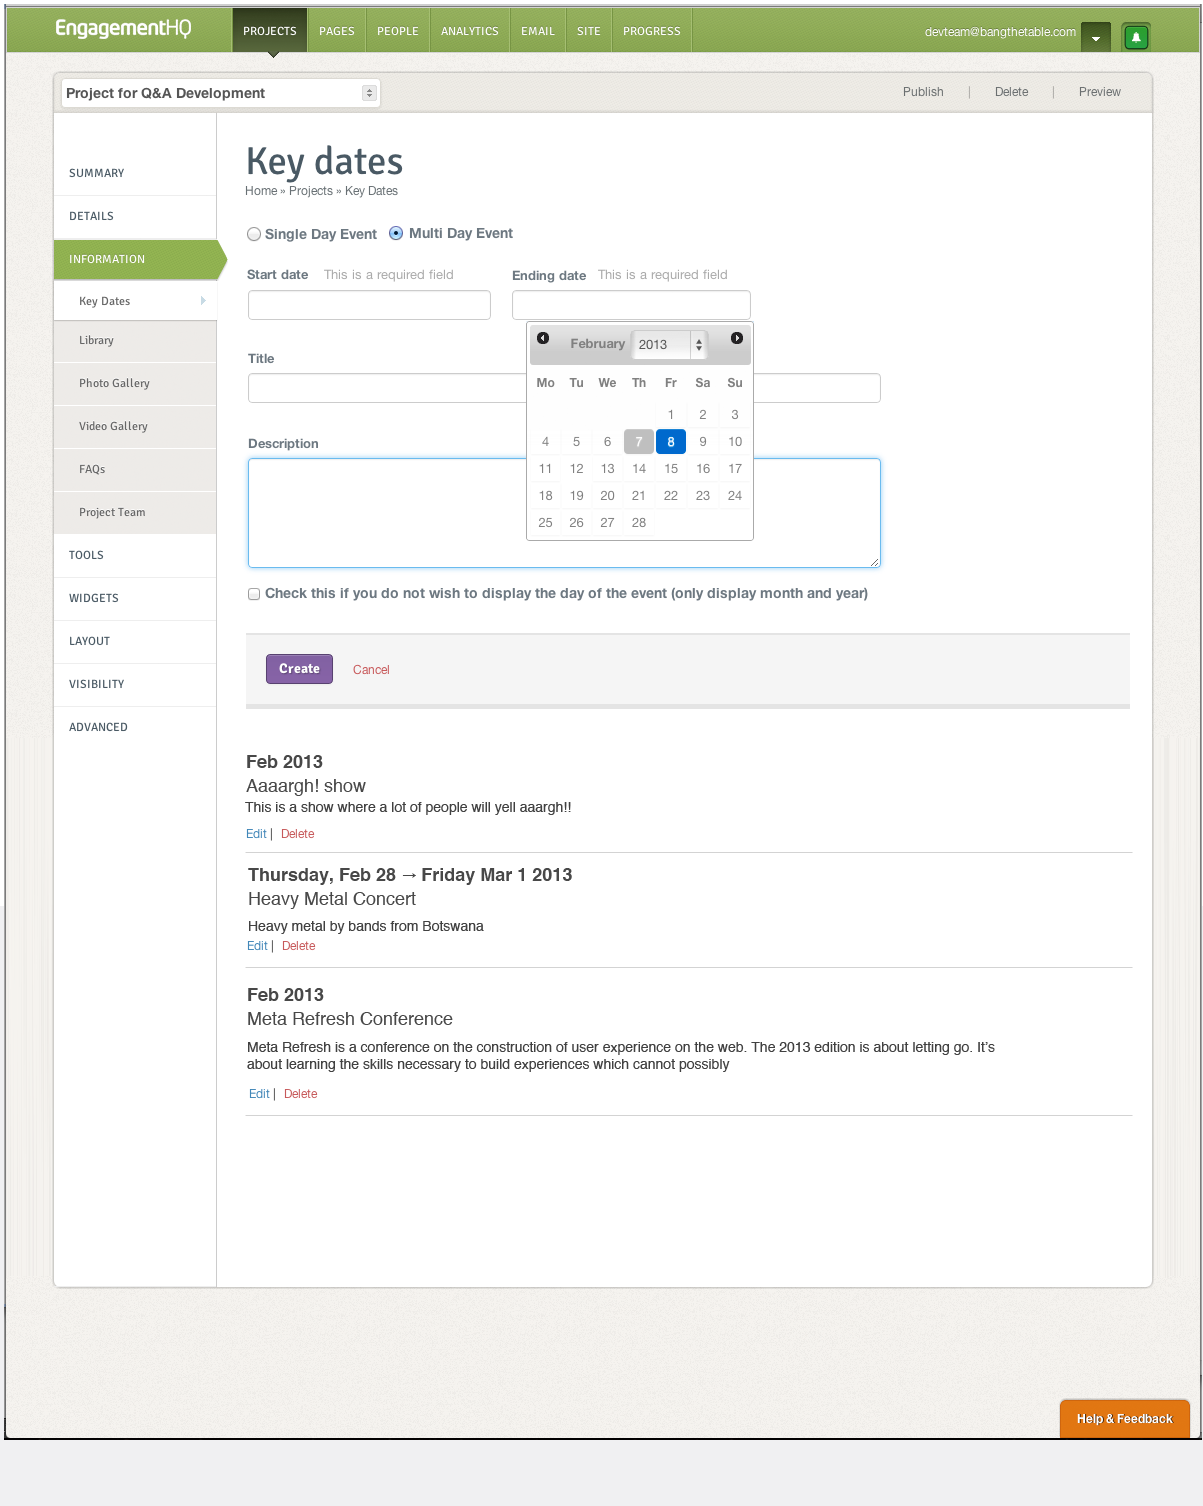 EHQ Admin - ADDING AN ENTRY IN THE KEY DATES TOOL